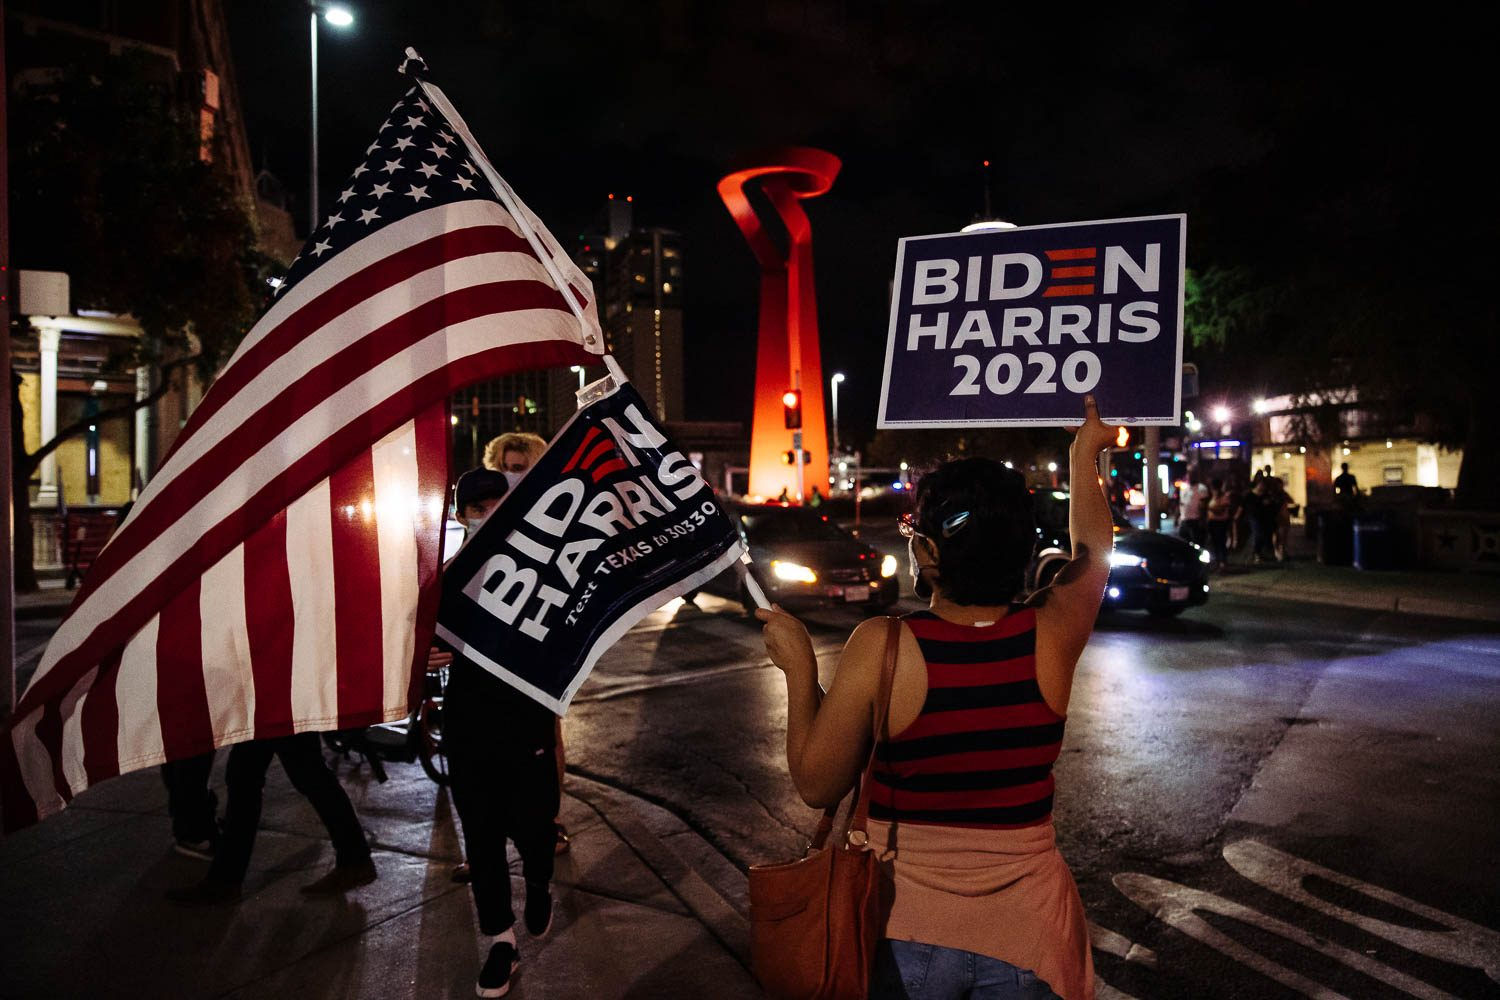 Supporters take to the streets in downtown San Antonio to celebrate President-elect Joe Biden and Vice President-elect Kamala Harris' win on Nov. 7, 2020. <b><em>Photo by Chris Stokes | Heron contributor</em></b>